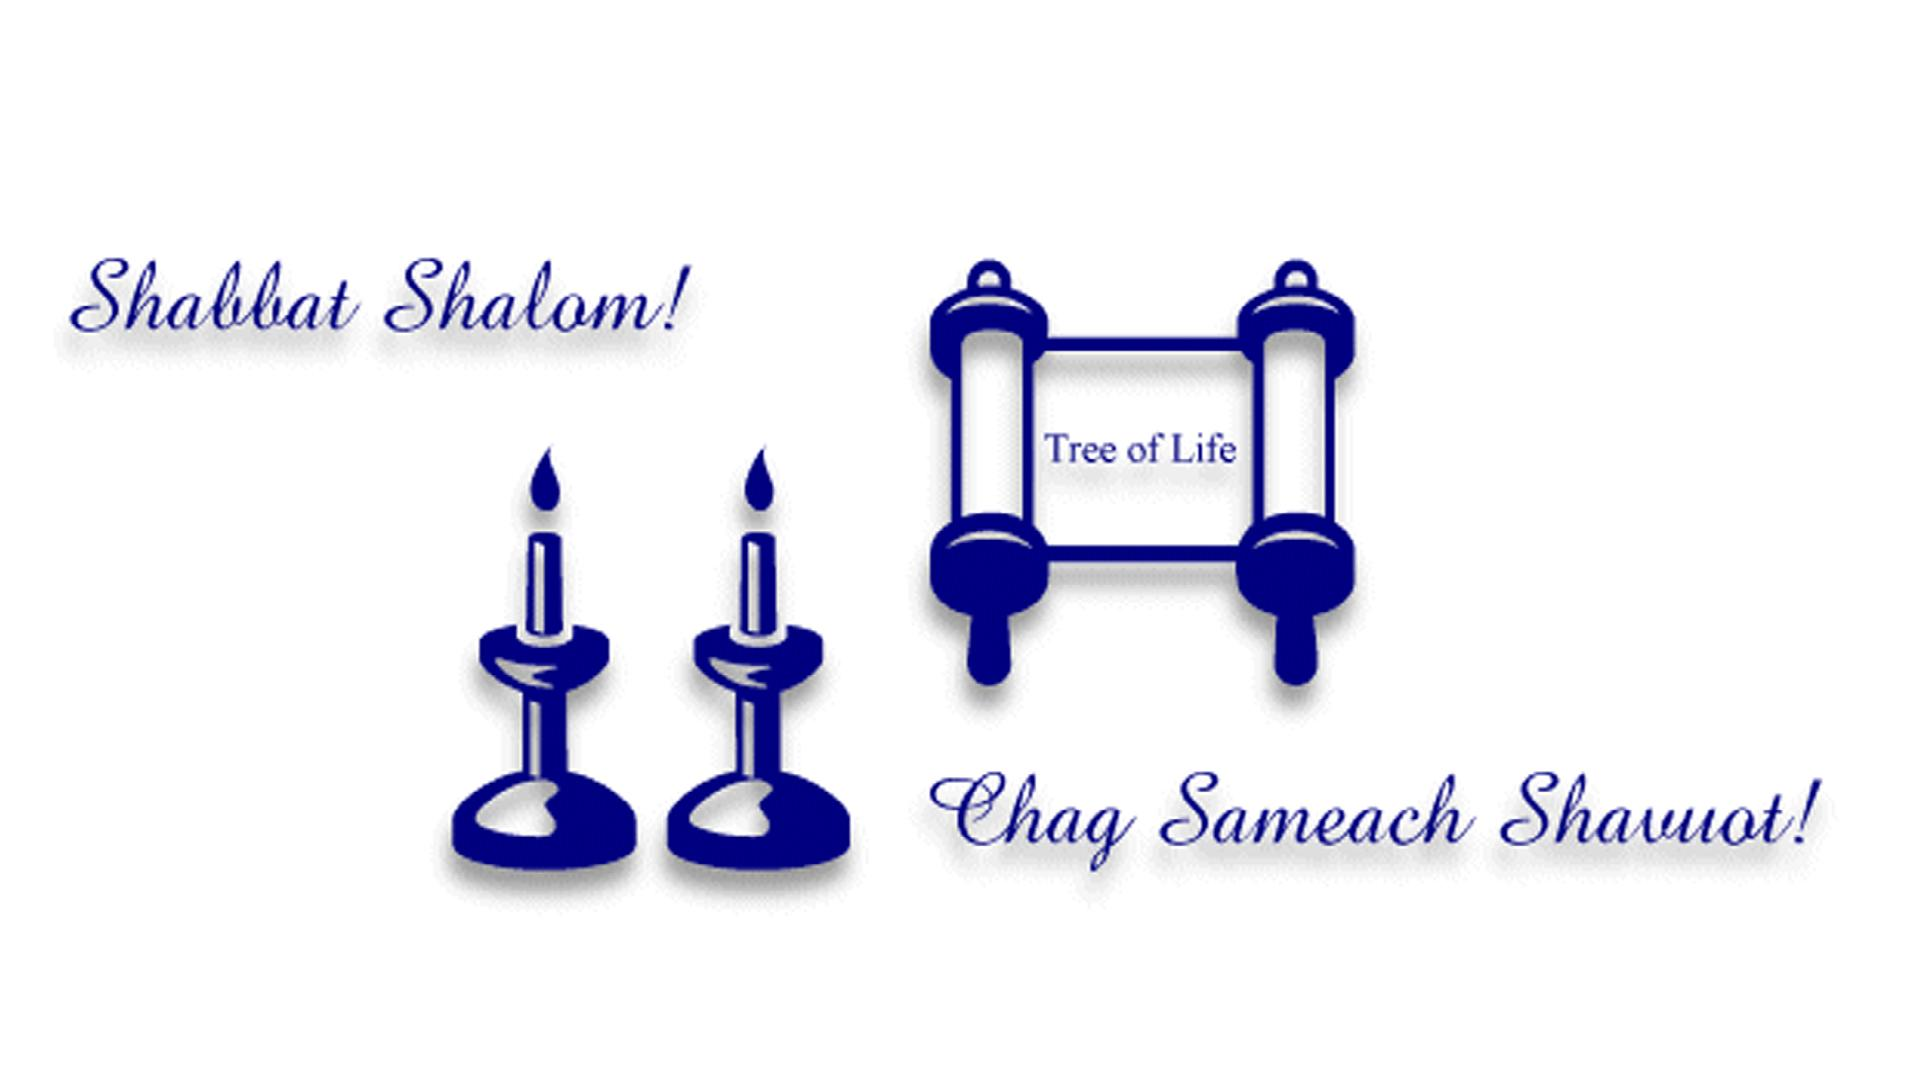 60 shabbat shalom greeting pictures shabbat shalom tree of life m4hsunfo